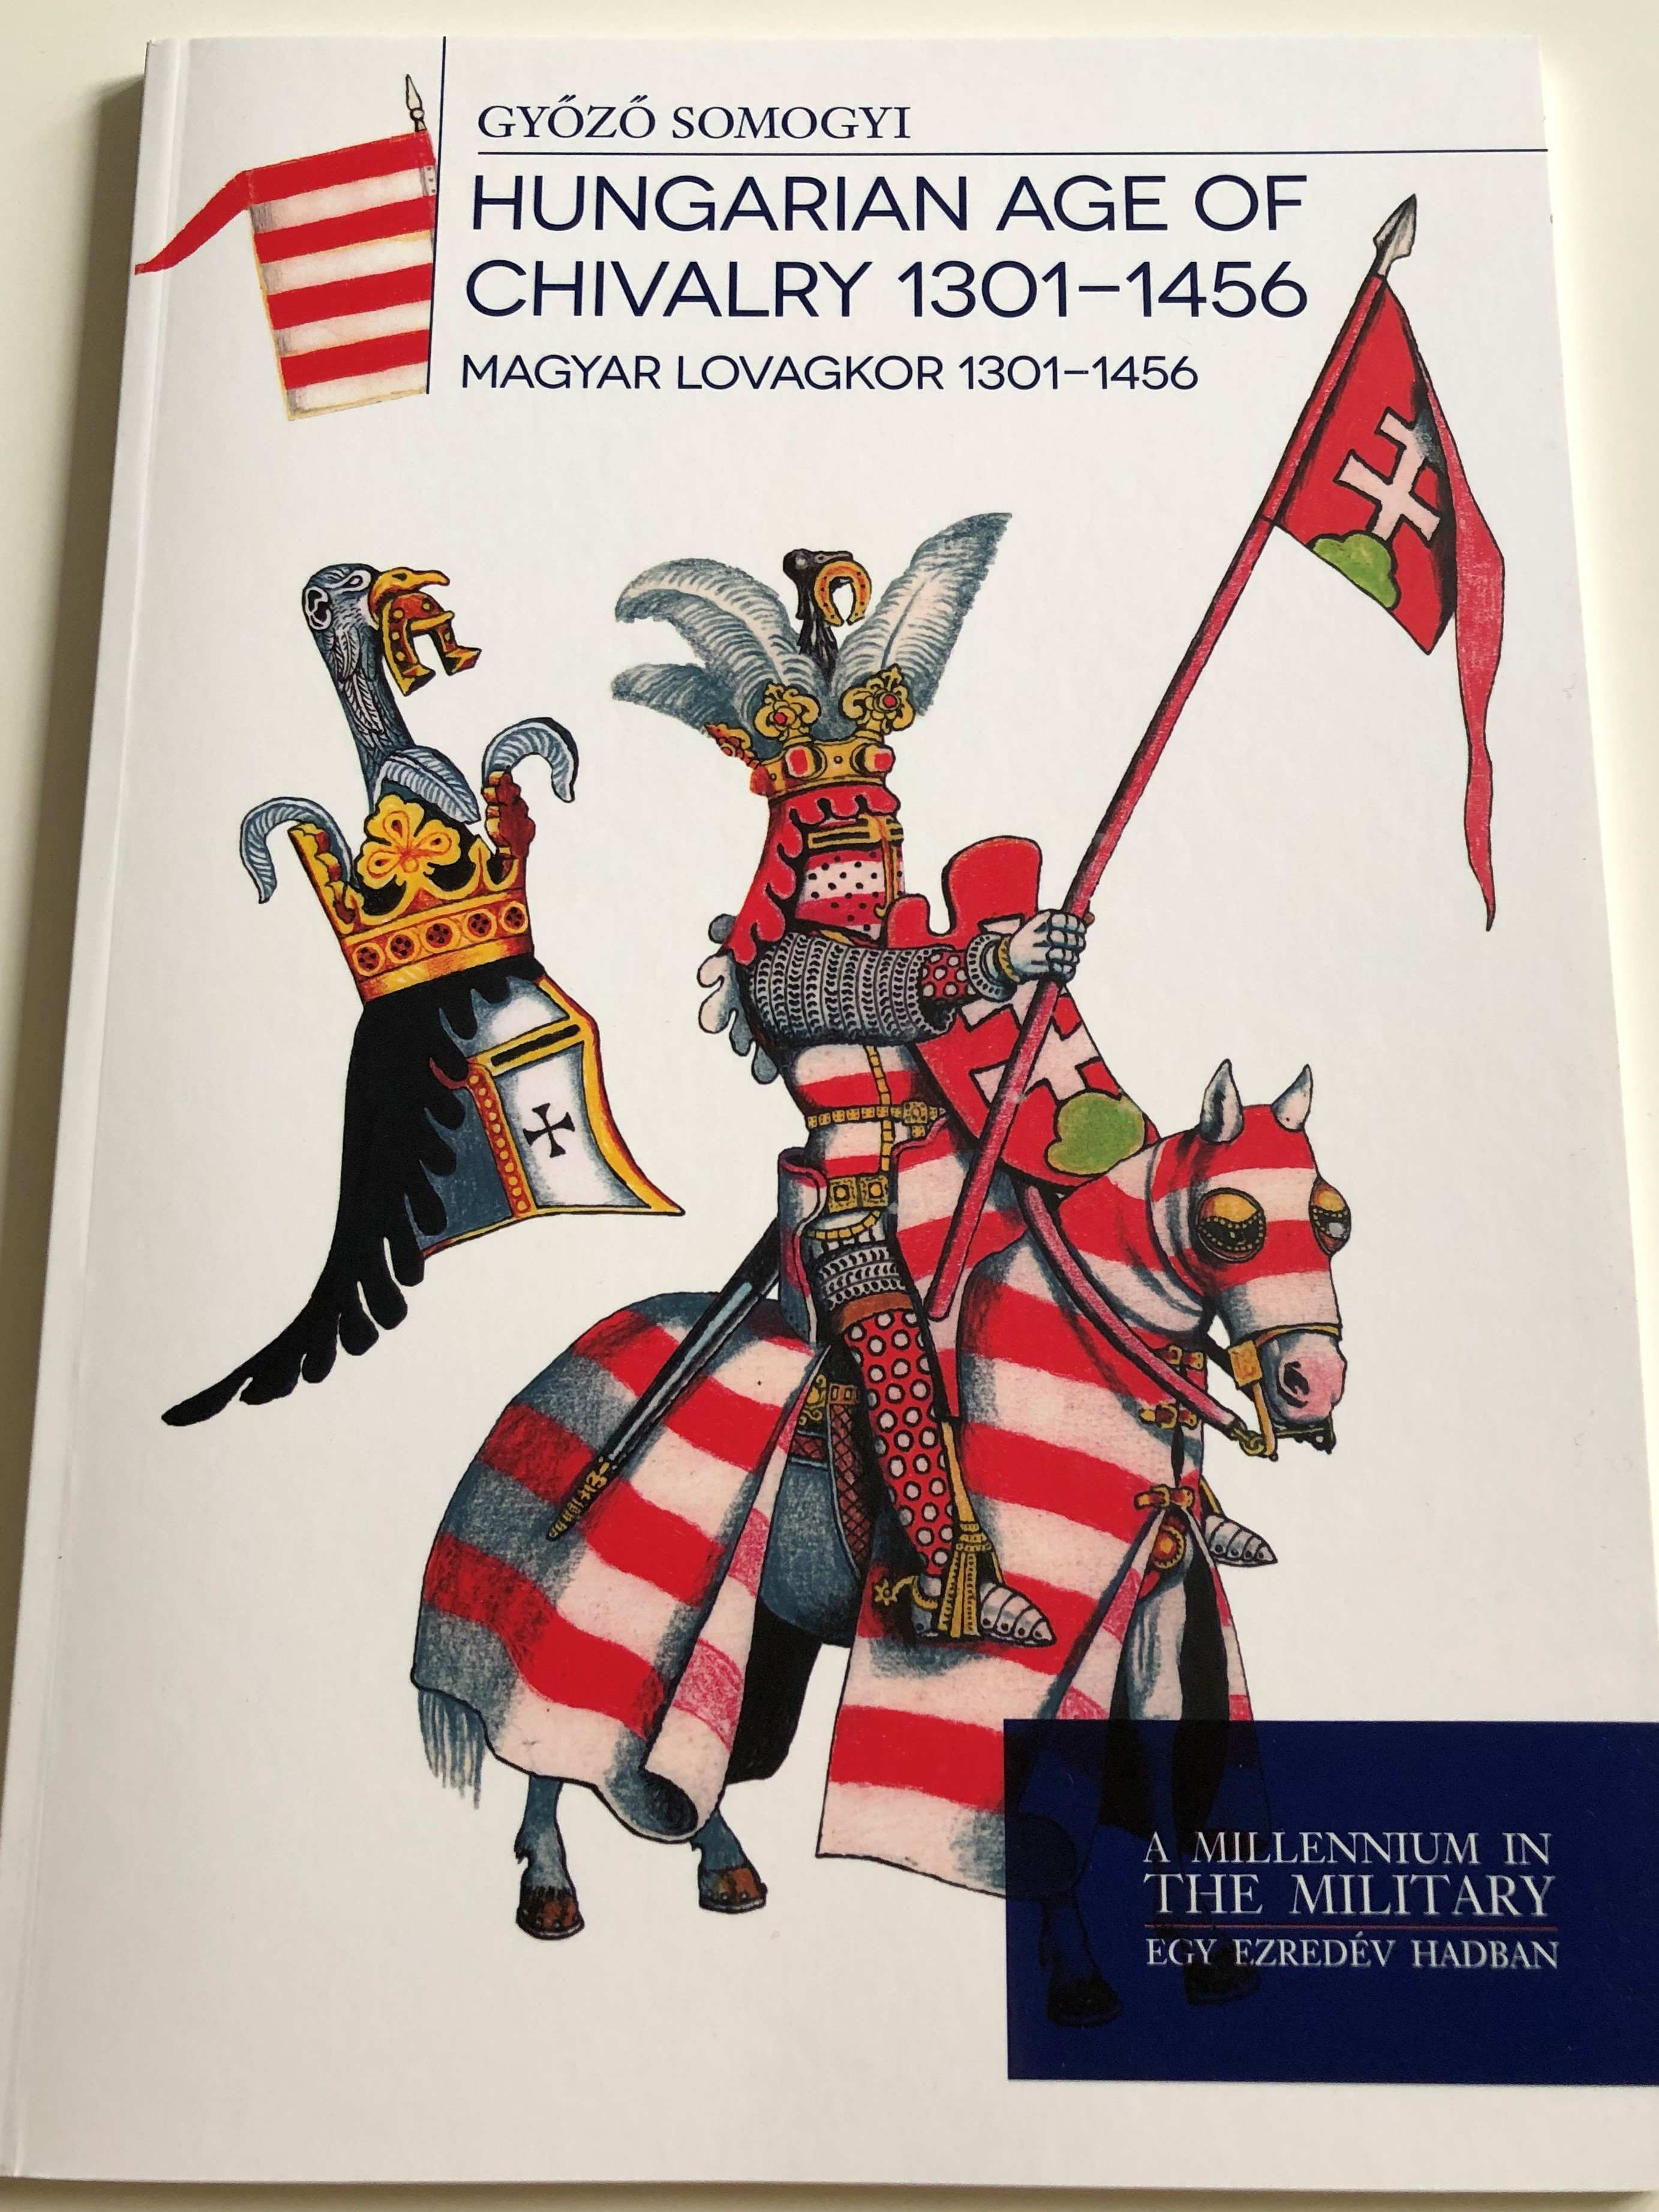 hungarian-age-of-chivalry-1901-1456-by-gy-z-somogyi-magyar-lovagkor-1301-1456-a-millennium-in-the-military-egy-ezred-v-hadban-paperback-2018-hm-zr-nyi-1-.jpg